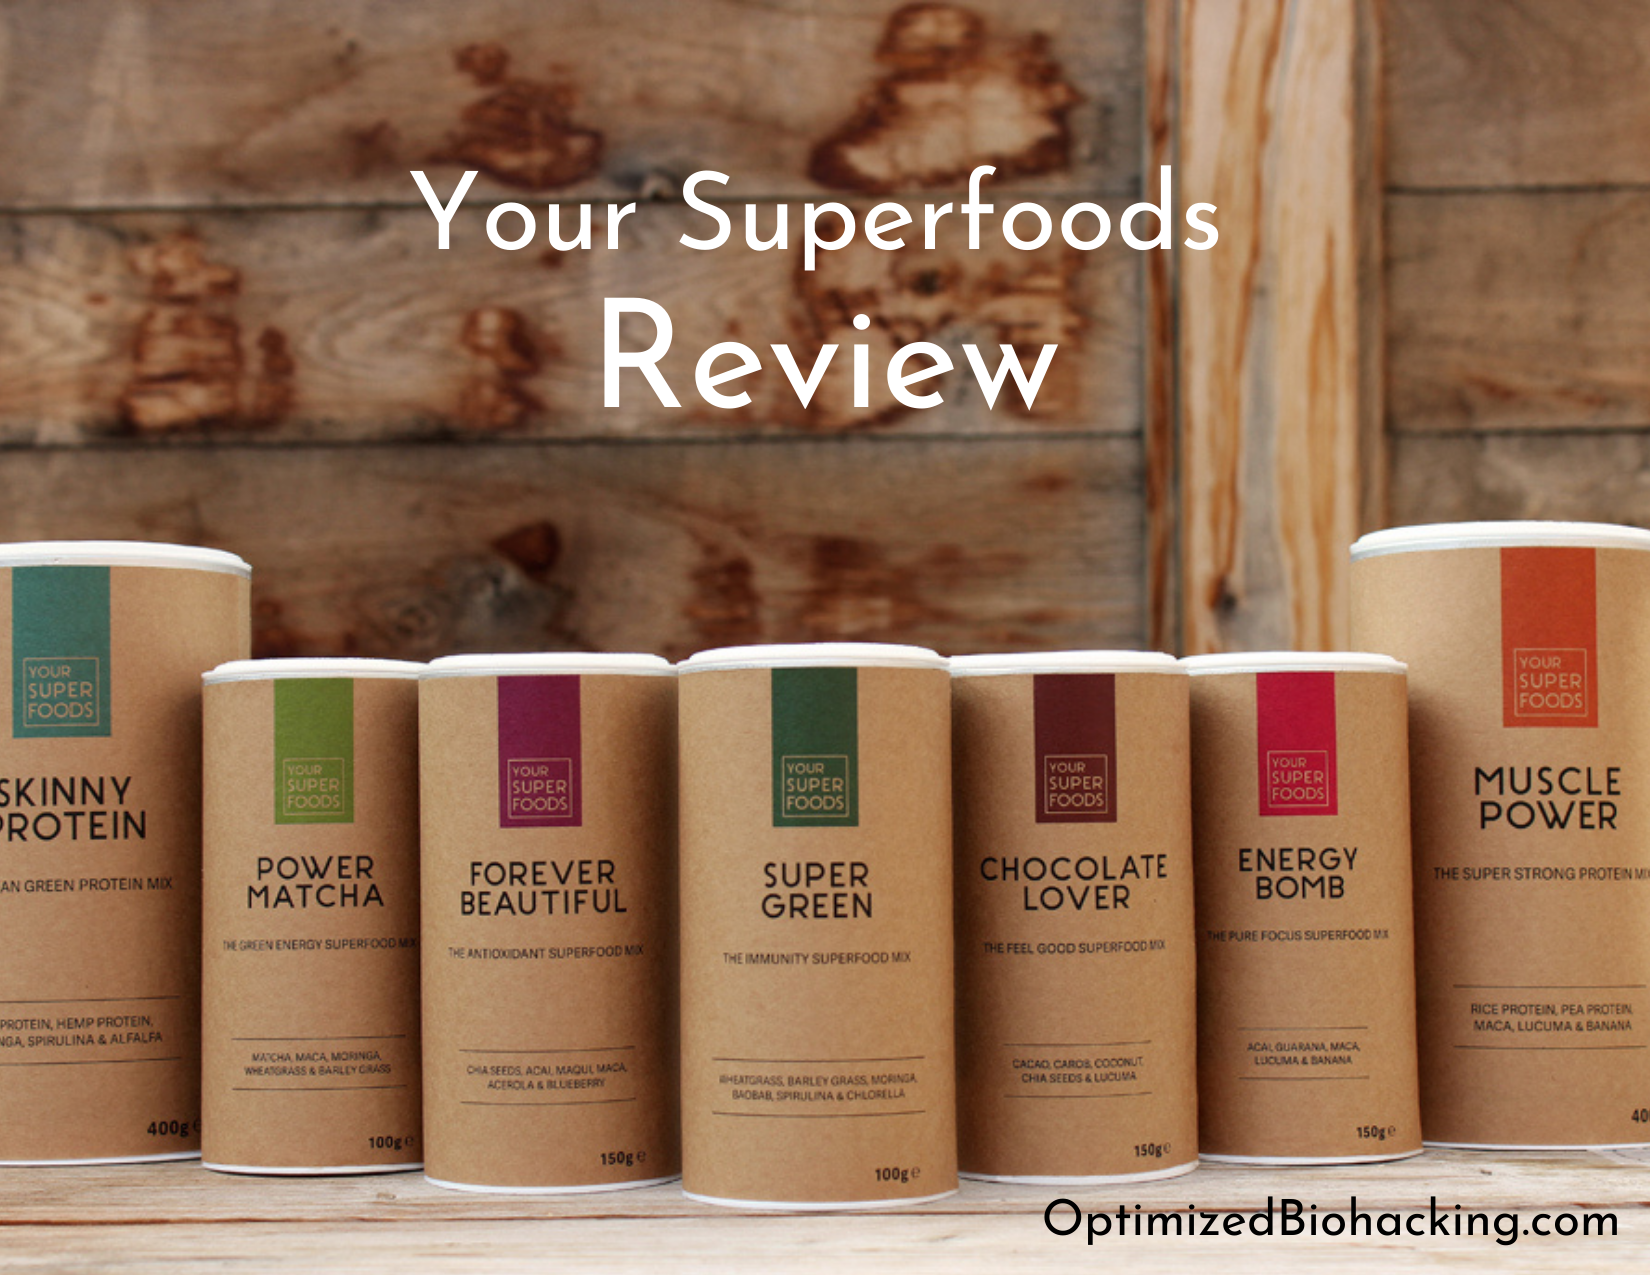 Your Superfoods Review